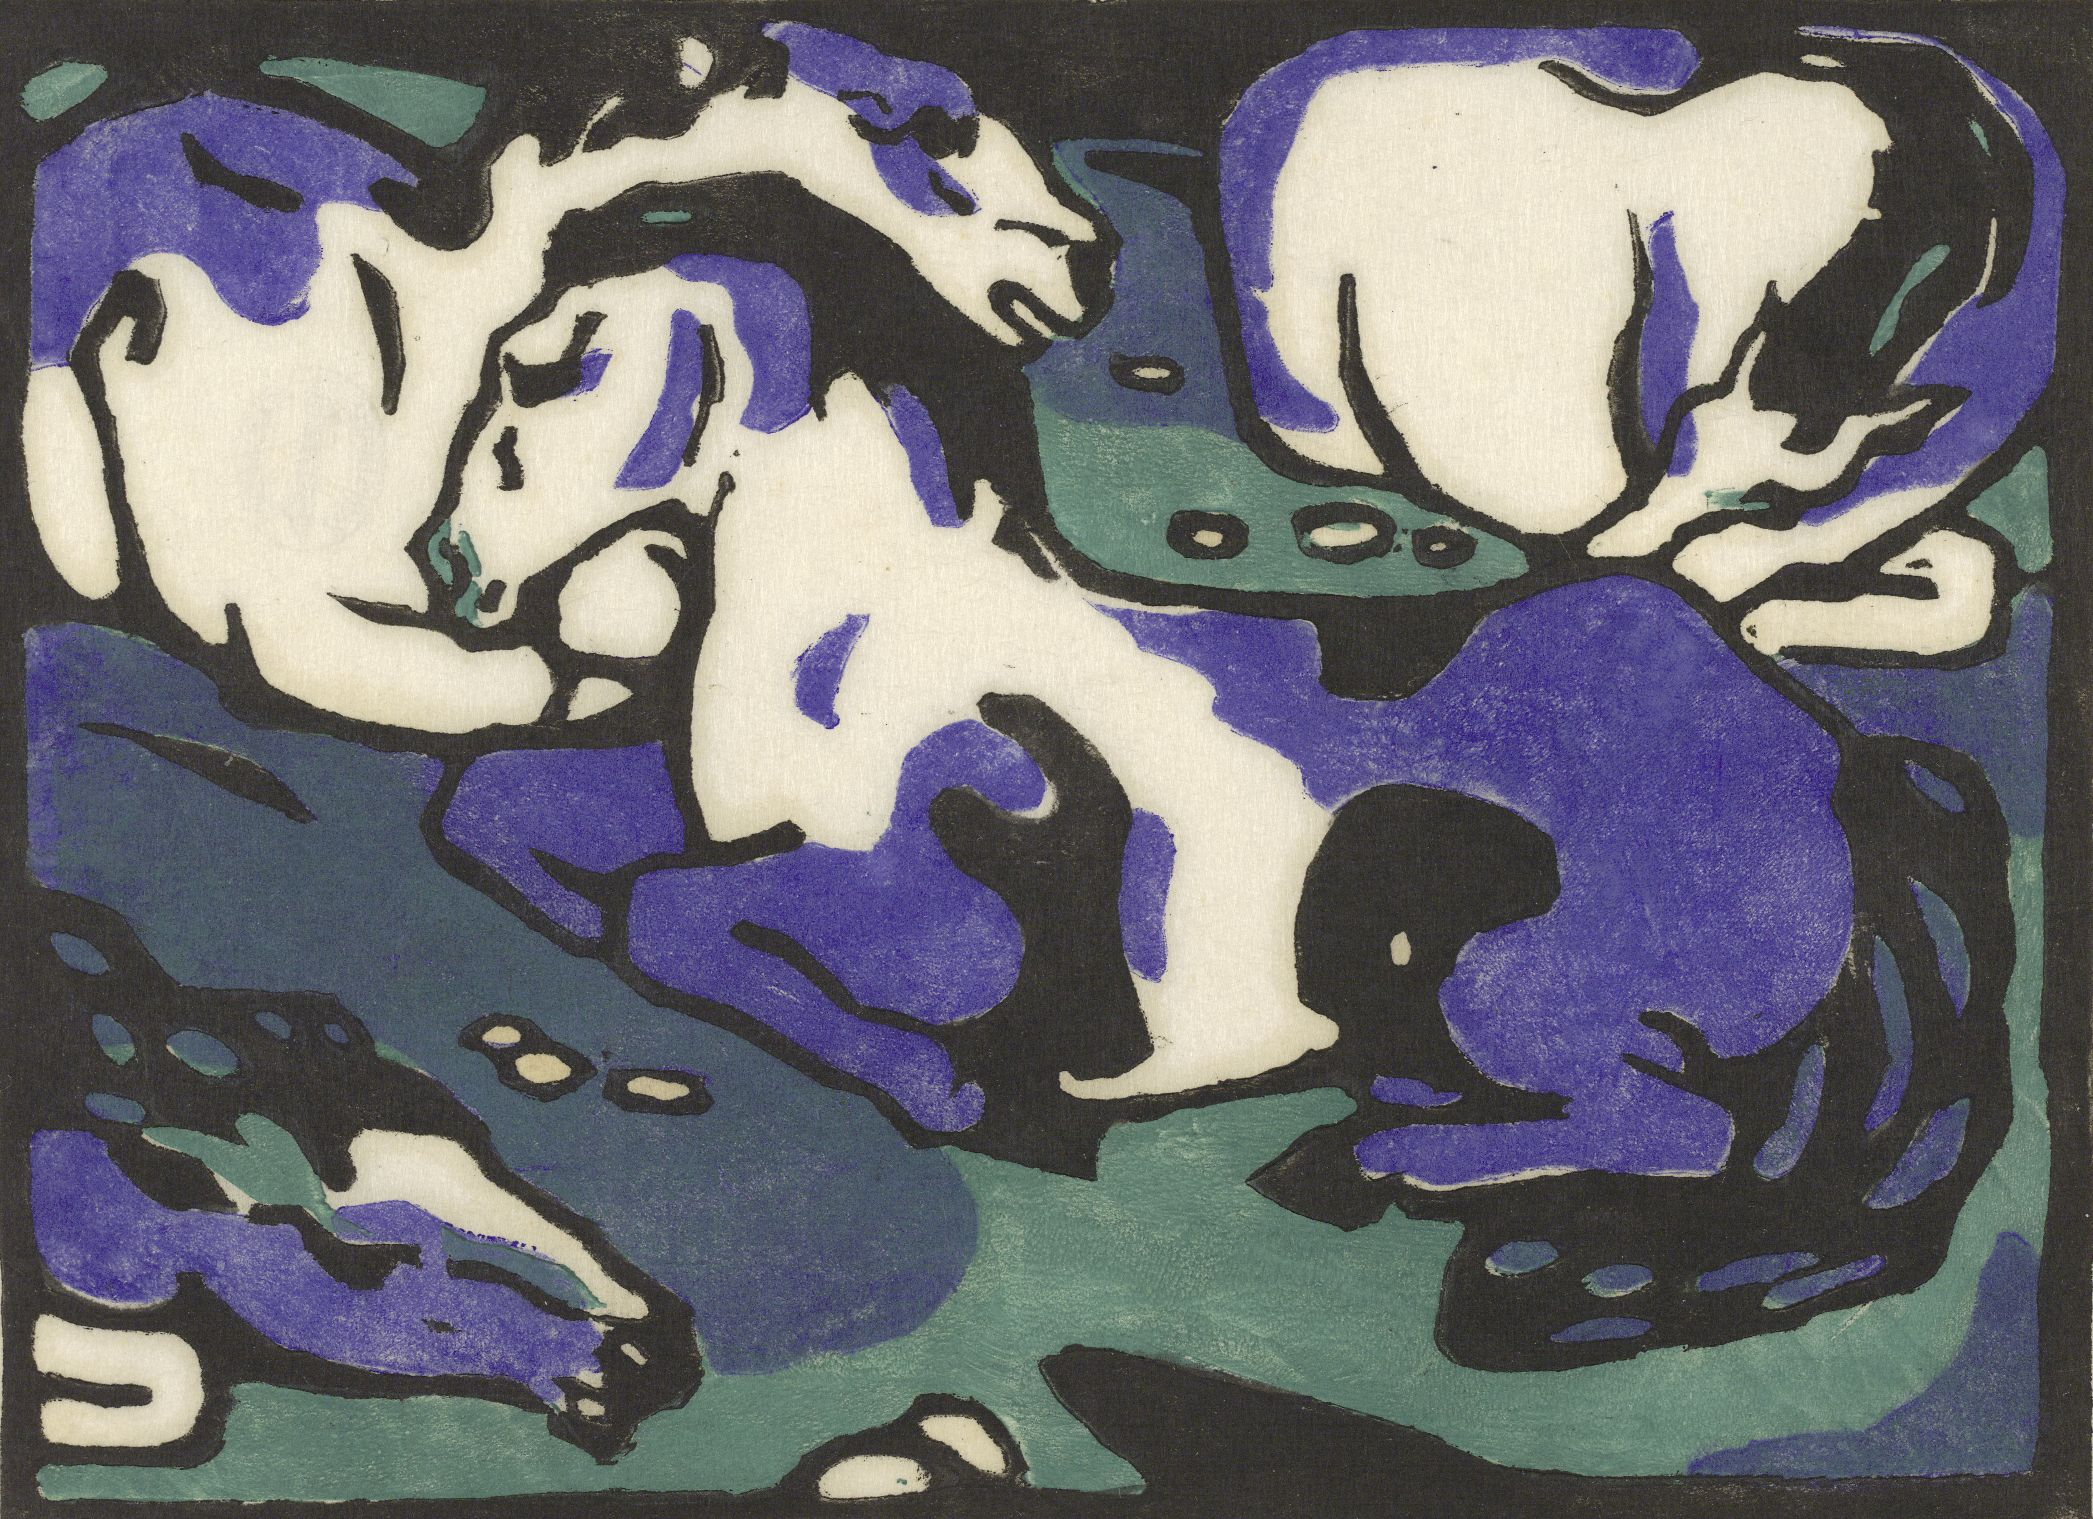 Franz Marc, Dormant Horses, 1911 – 1912, Woodcut, 16,8 x 23 cm Albertina Wien. Permanent loan by the Austrian Ludwig Foundation for Art and Science (If used online, please add: www.albertina.at)